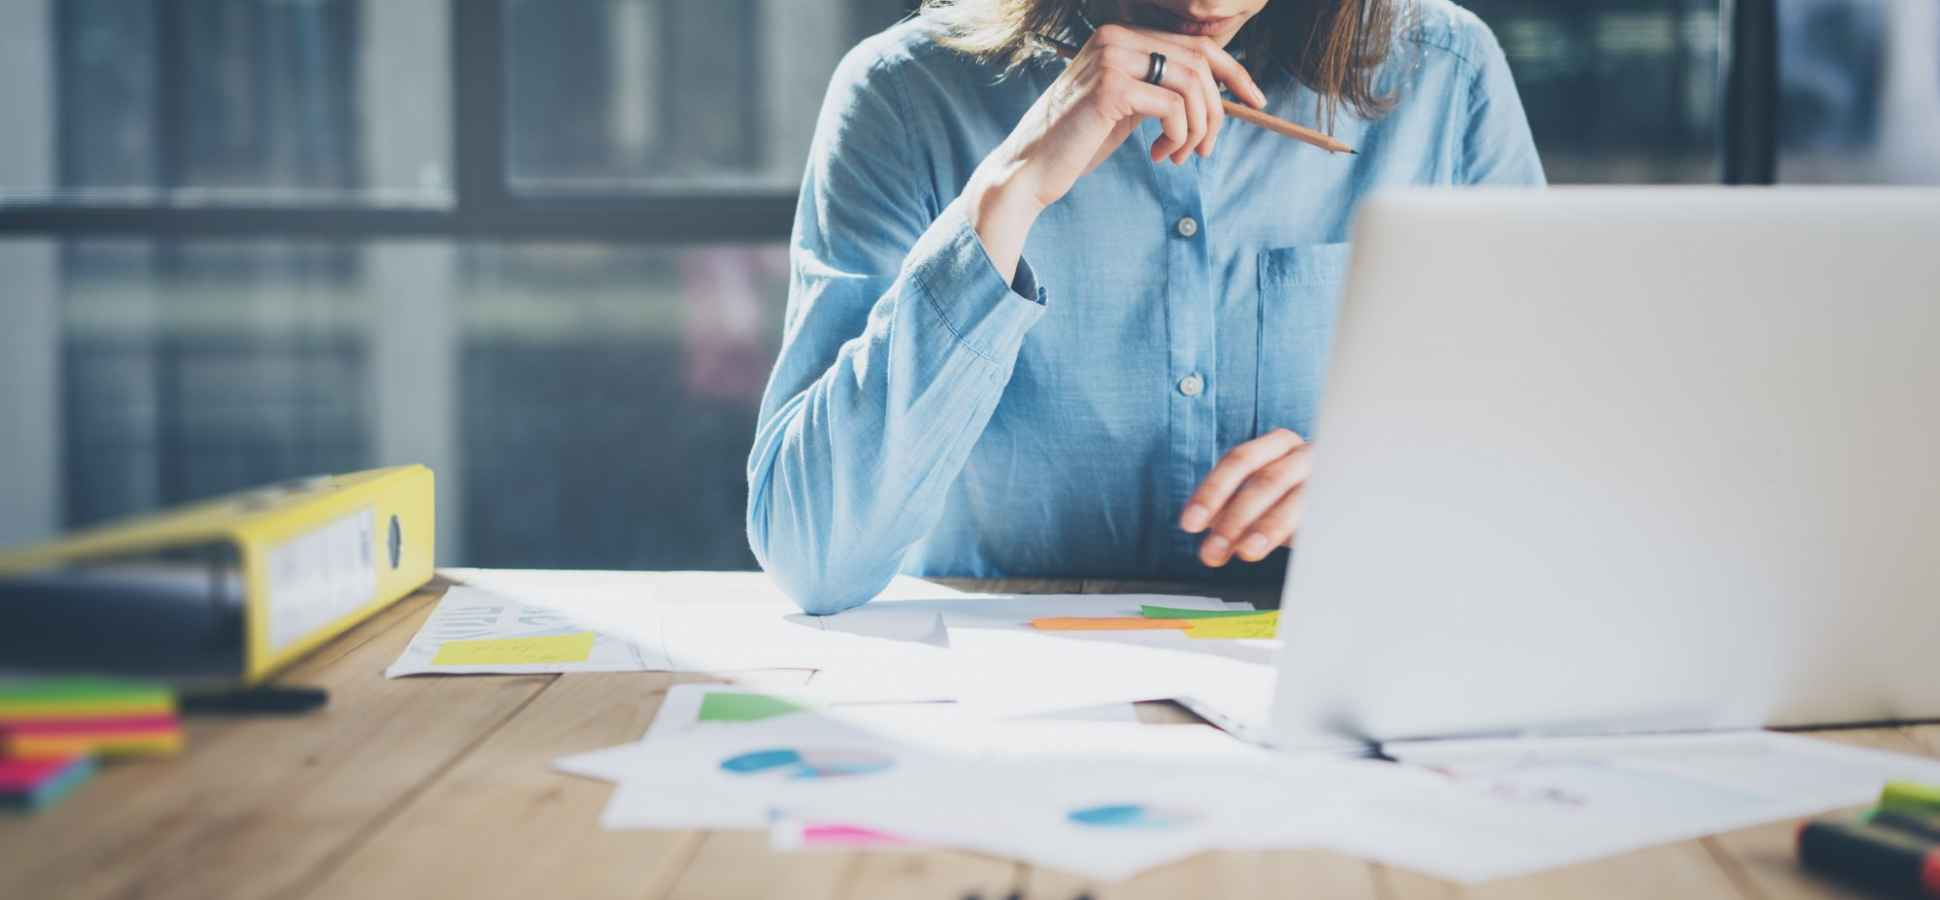 End Your Workday With These 4 Questions